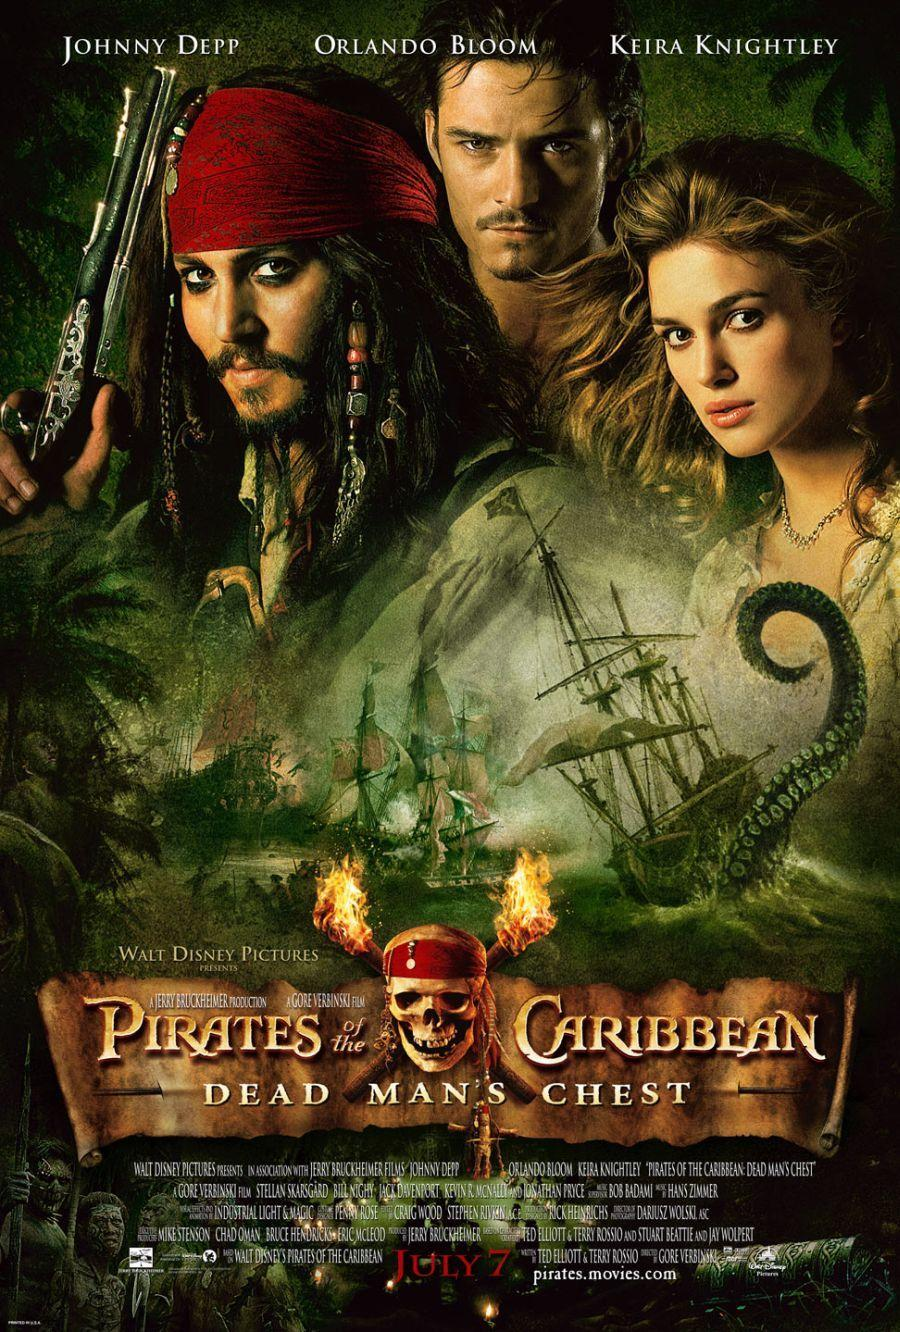 Pirates%20of%20the%20Caribbean%20Dead%20Man%E2%80%99s%20Chest%202006.1 1 دانلود فیلم Pirates of the Caribbean: Dead Mans Chest 2006